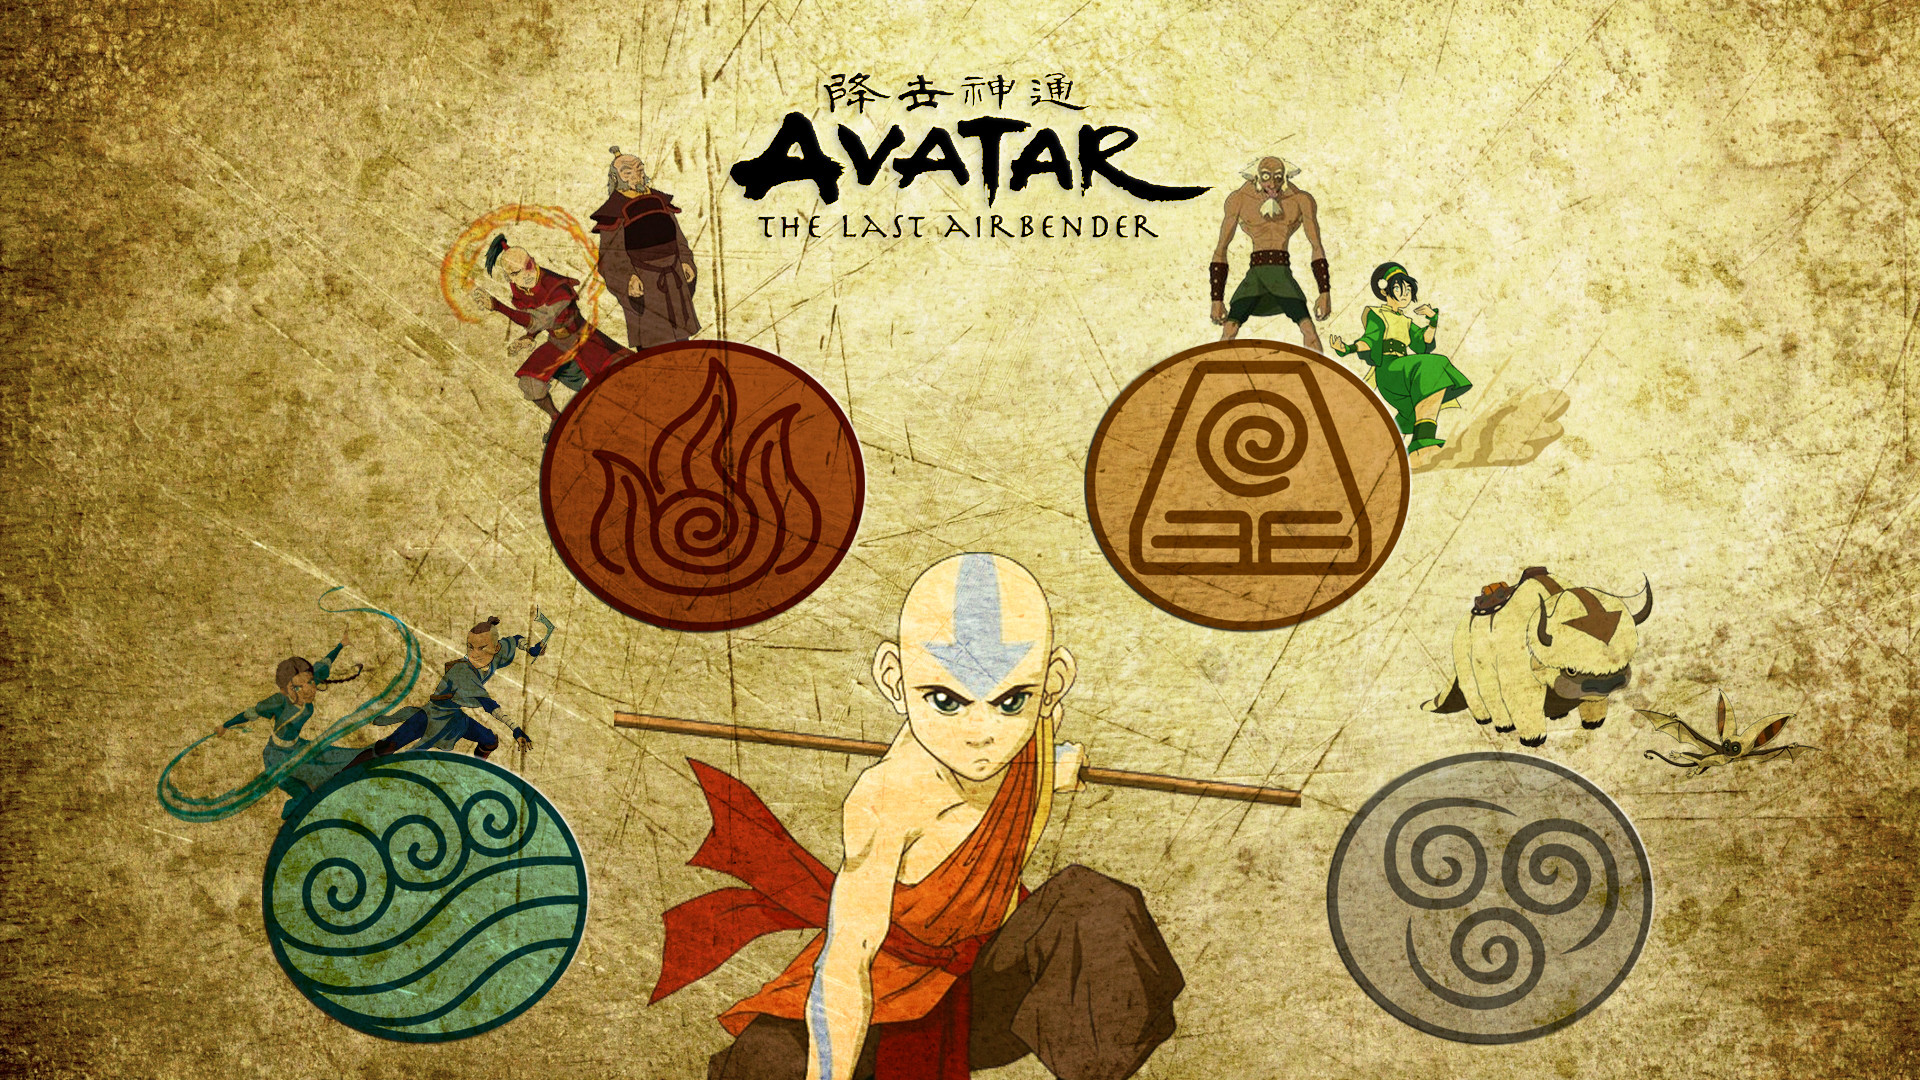 Avatar The Last Airbender Wallpapers 71 Images